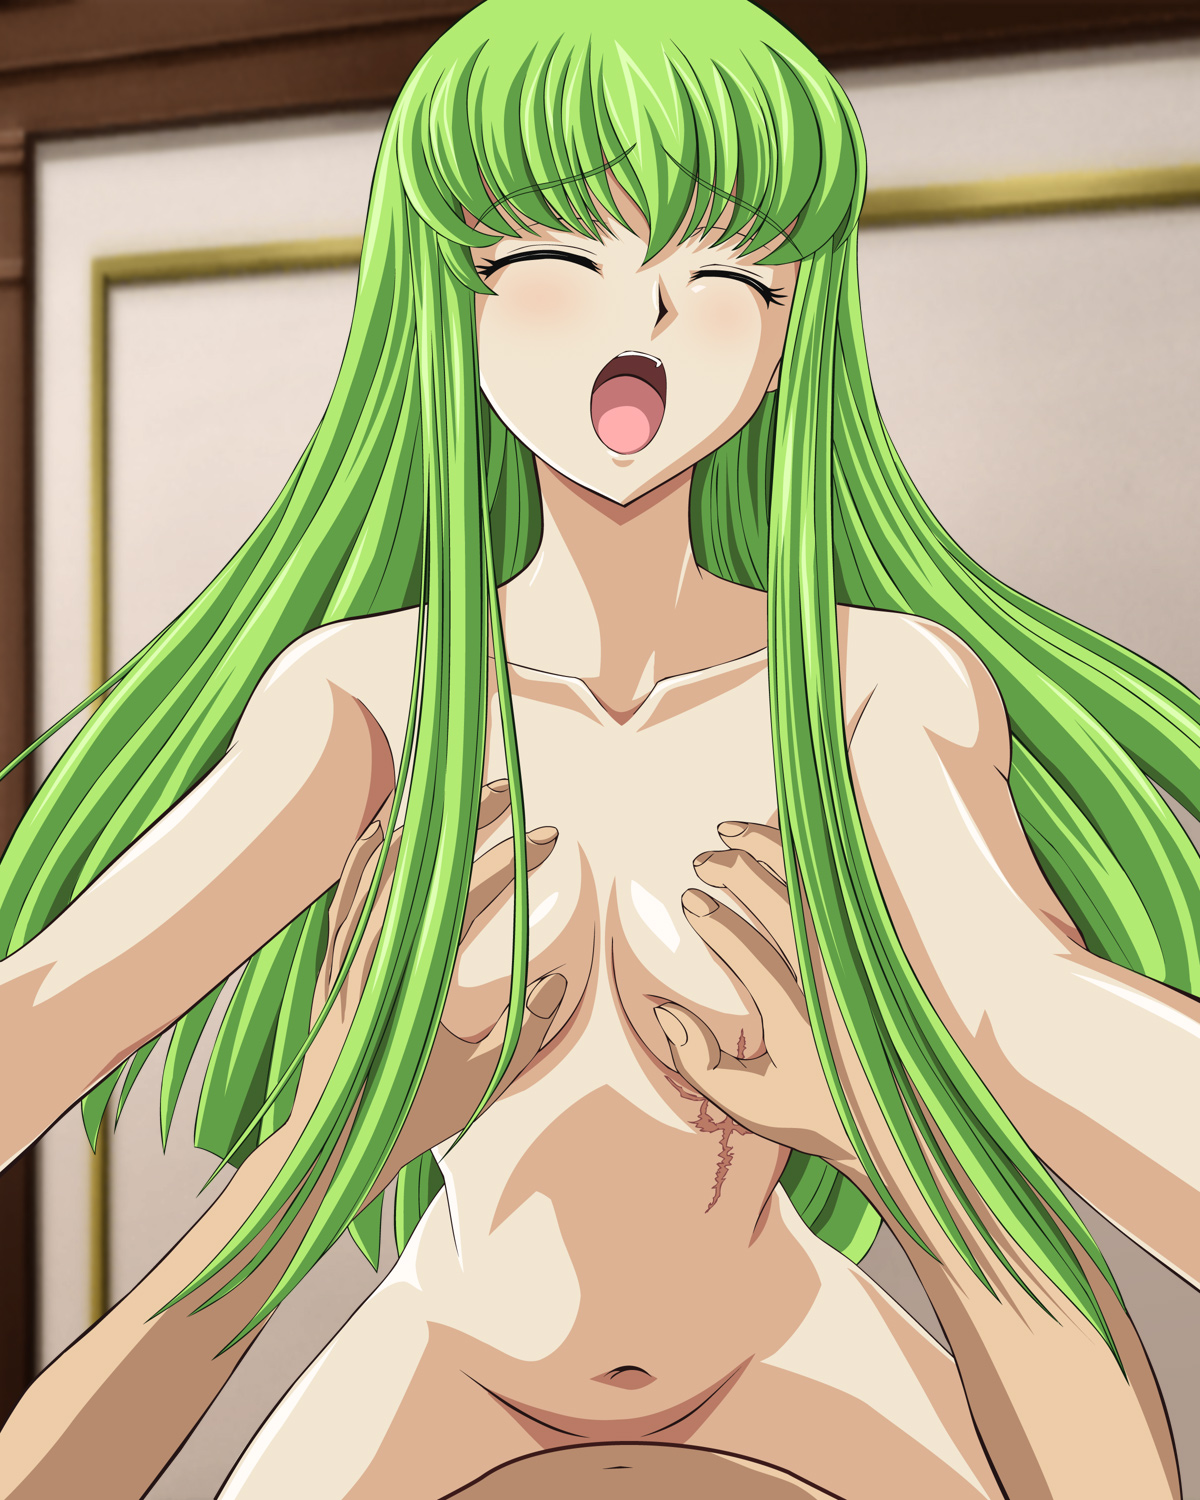 Opinion Cc code geass hentai interesting